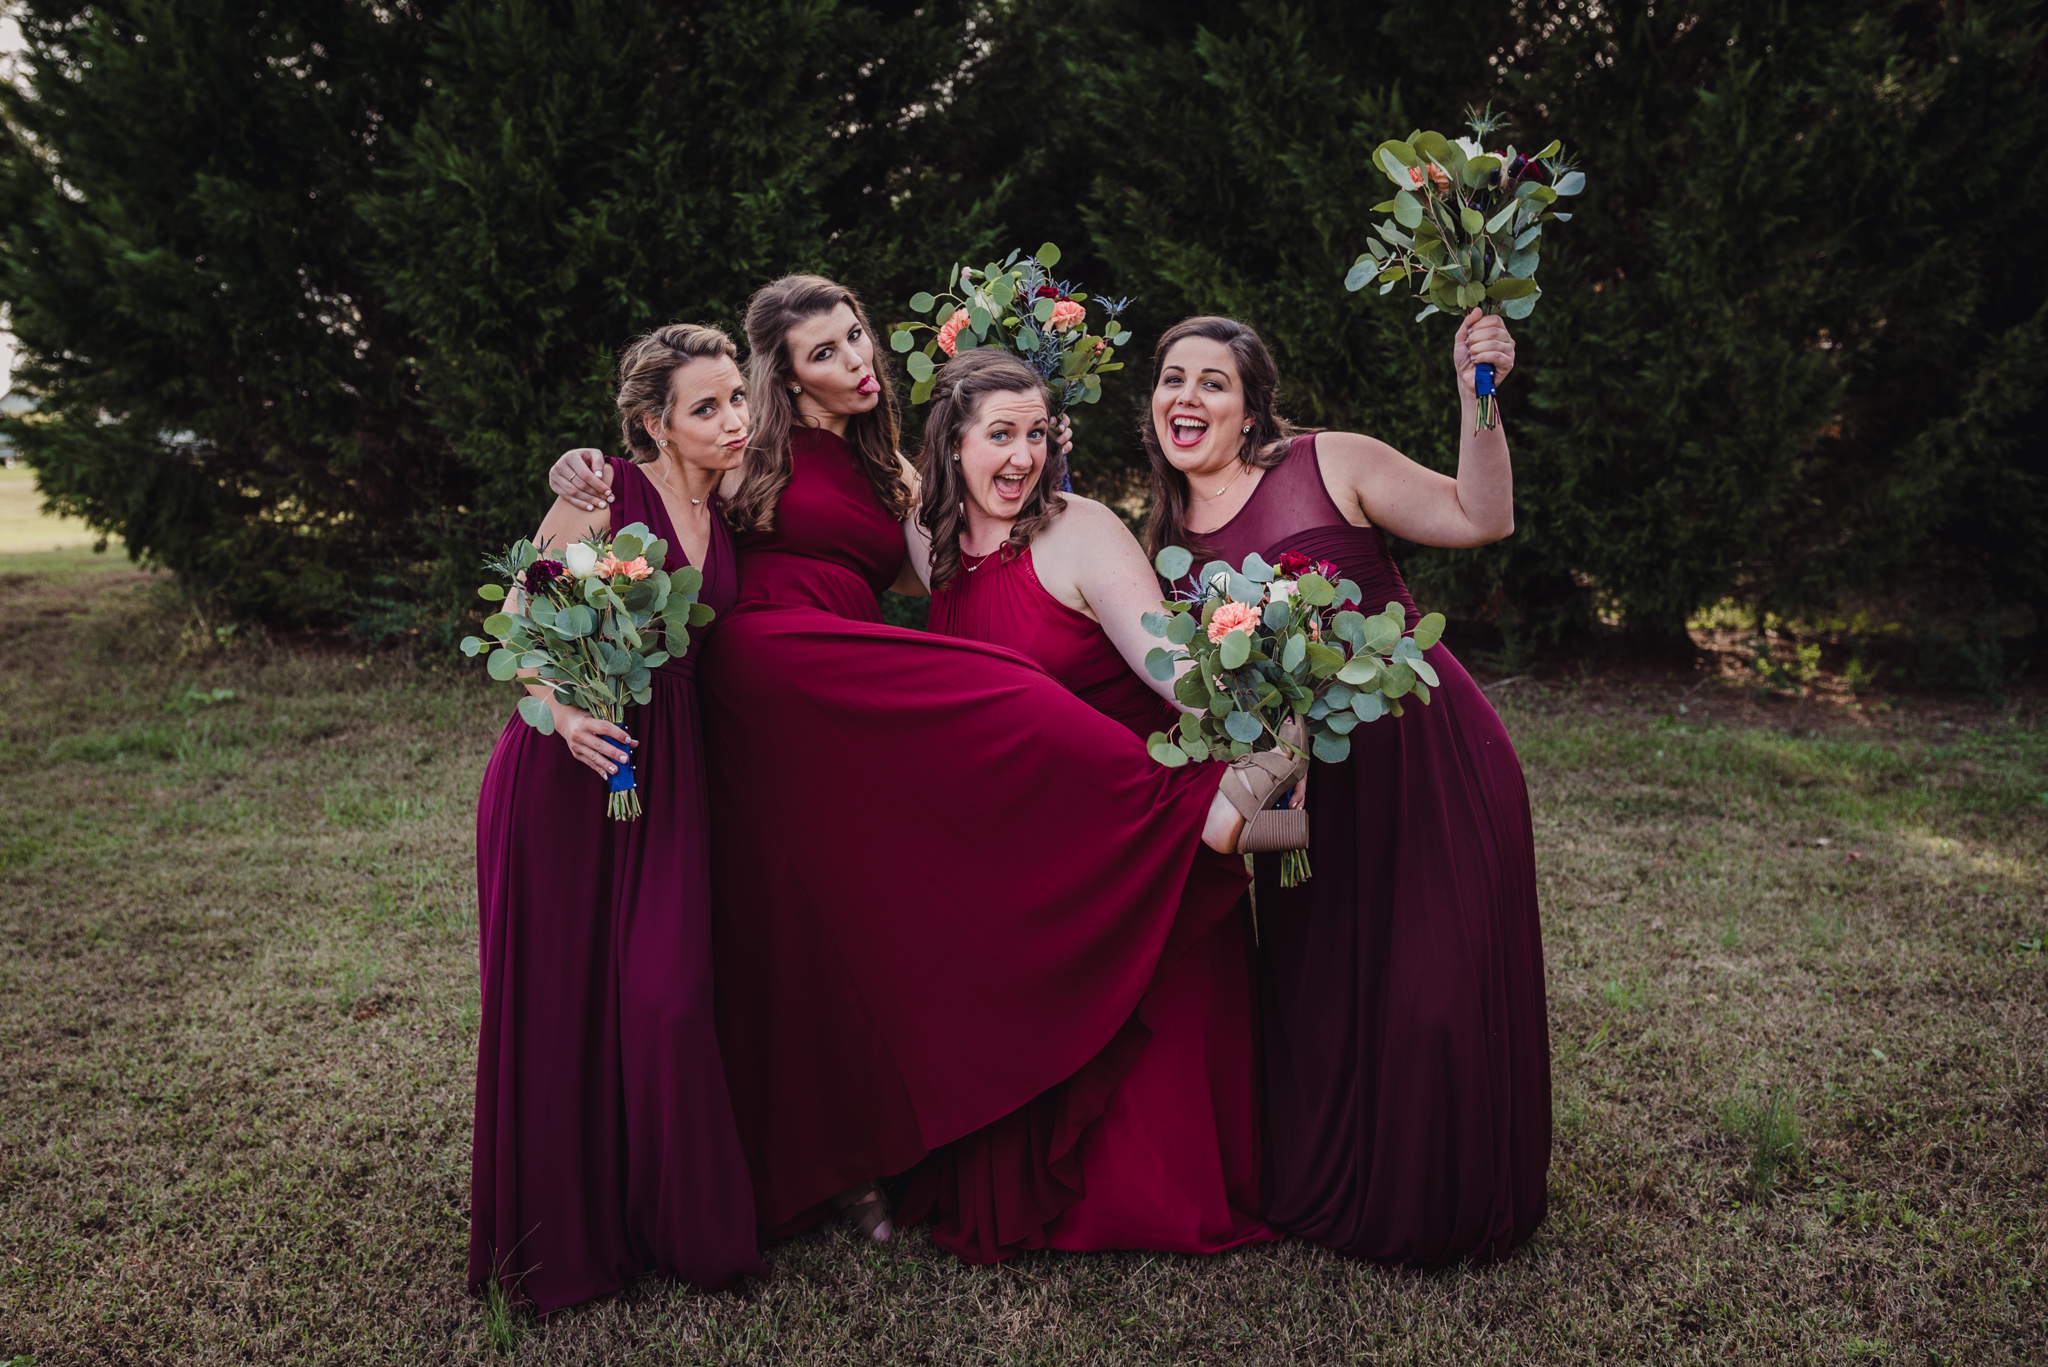 a-funny-picture-of-the-bridesmaids.jpg